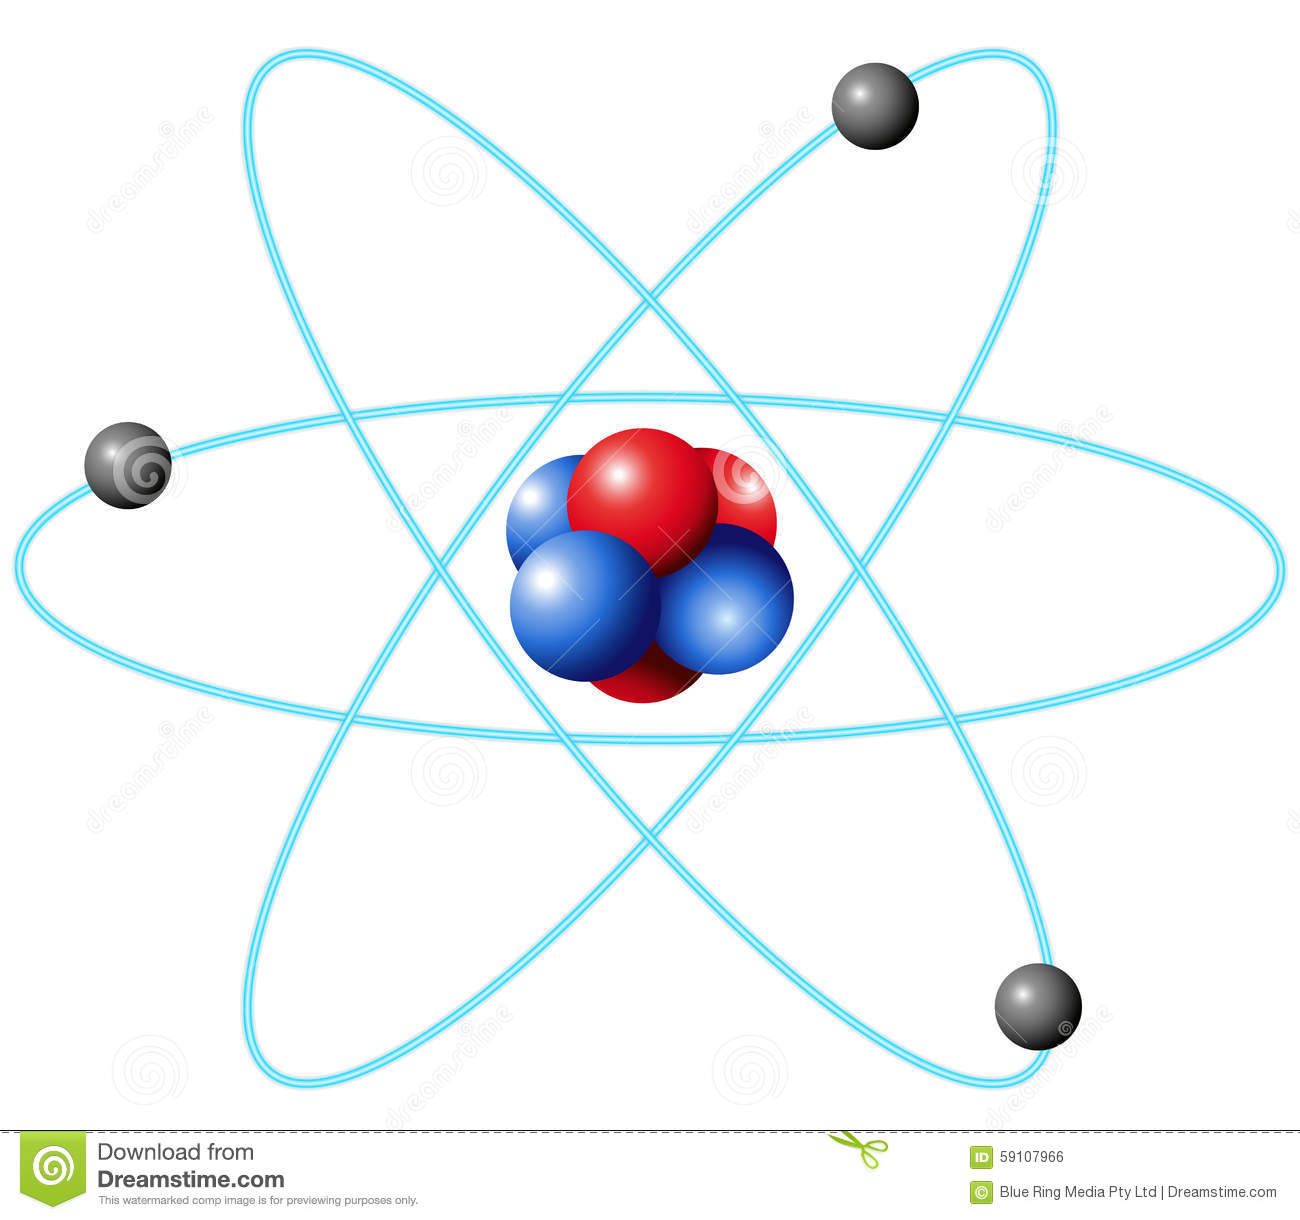 Atom Diagram In Large Scale Stock Vector Image 59107966